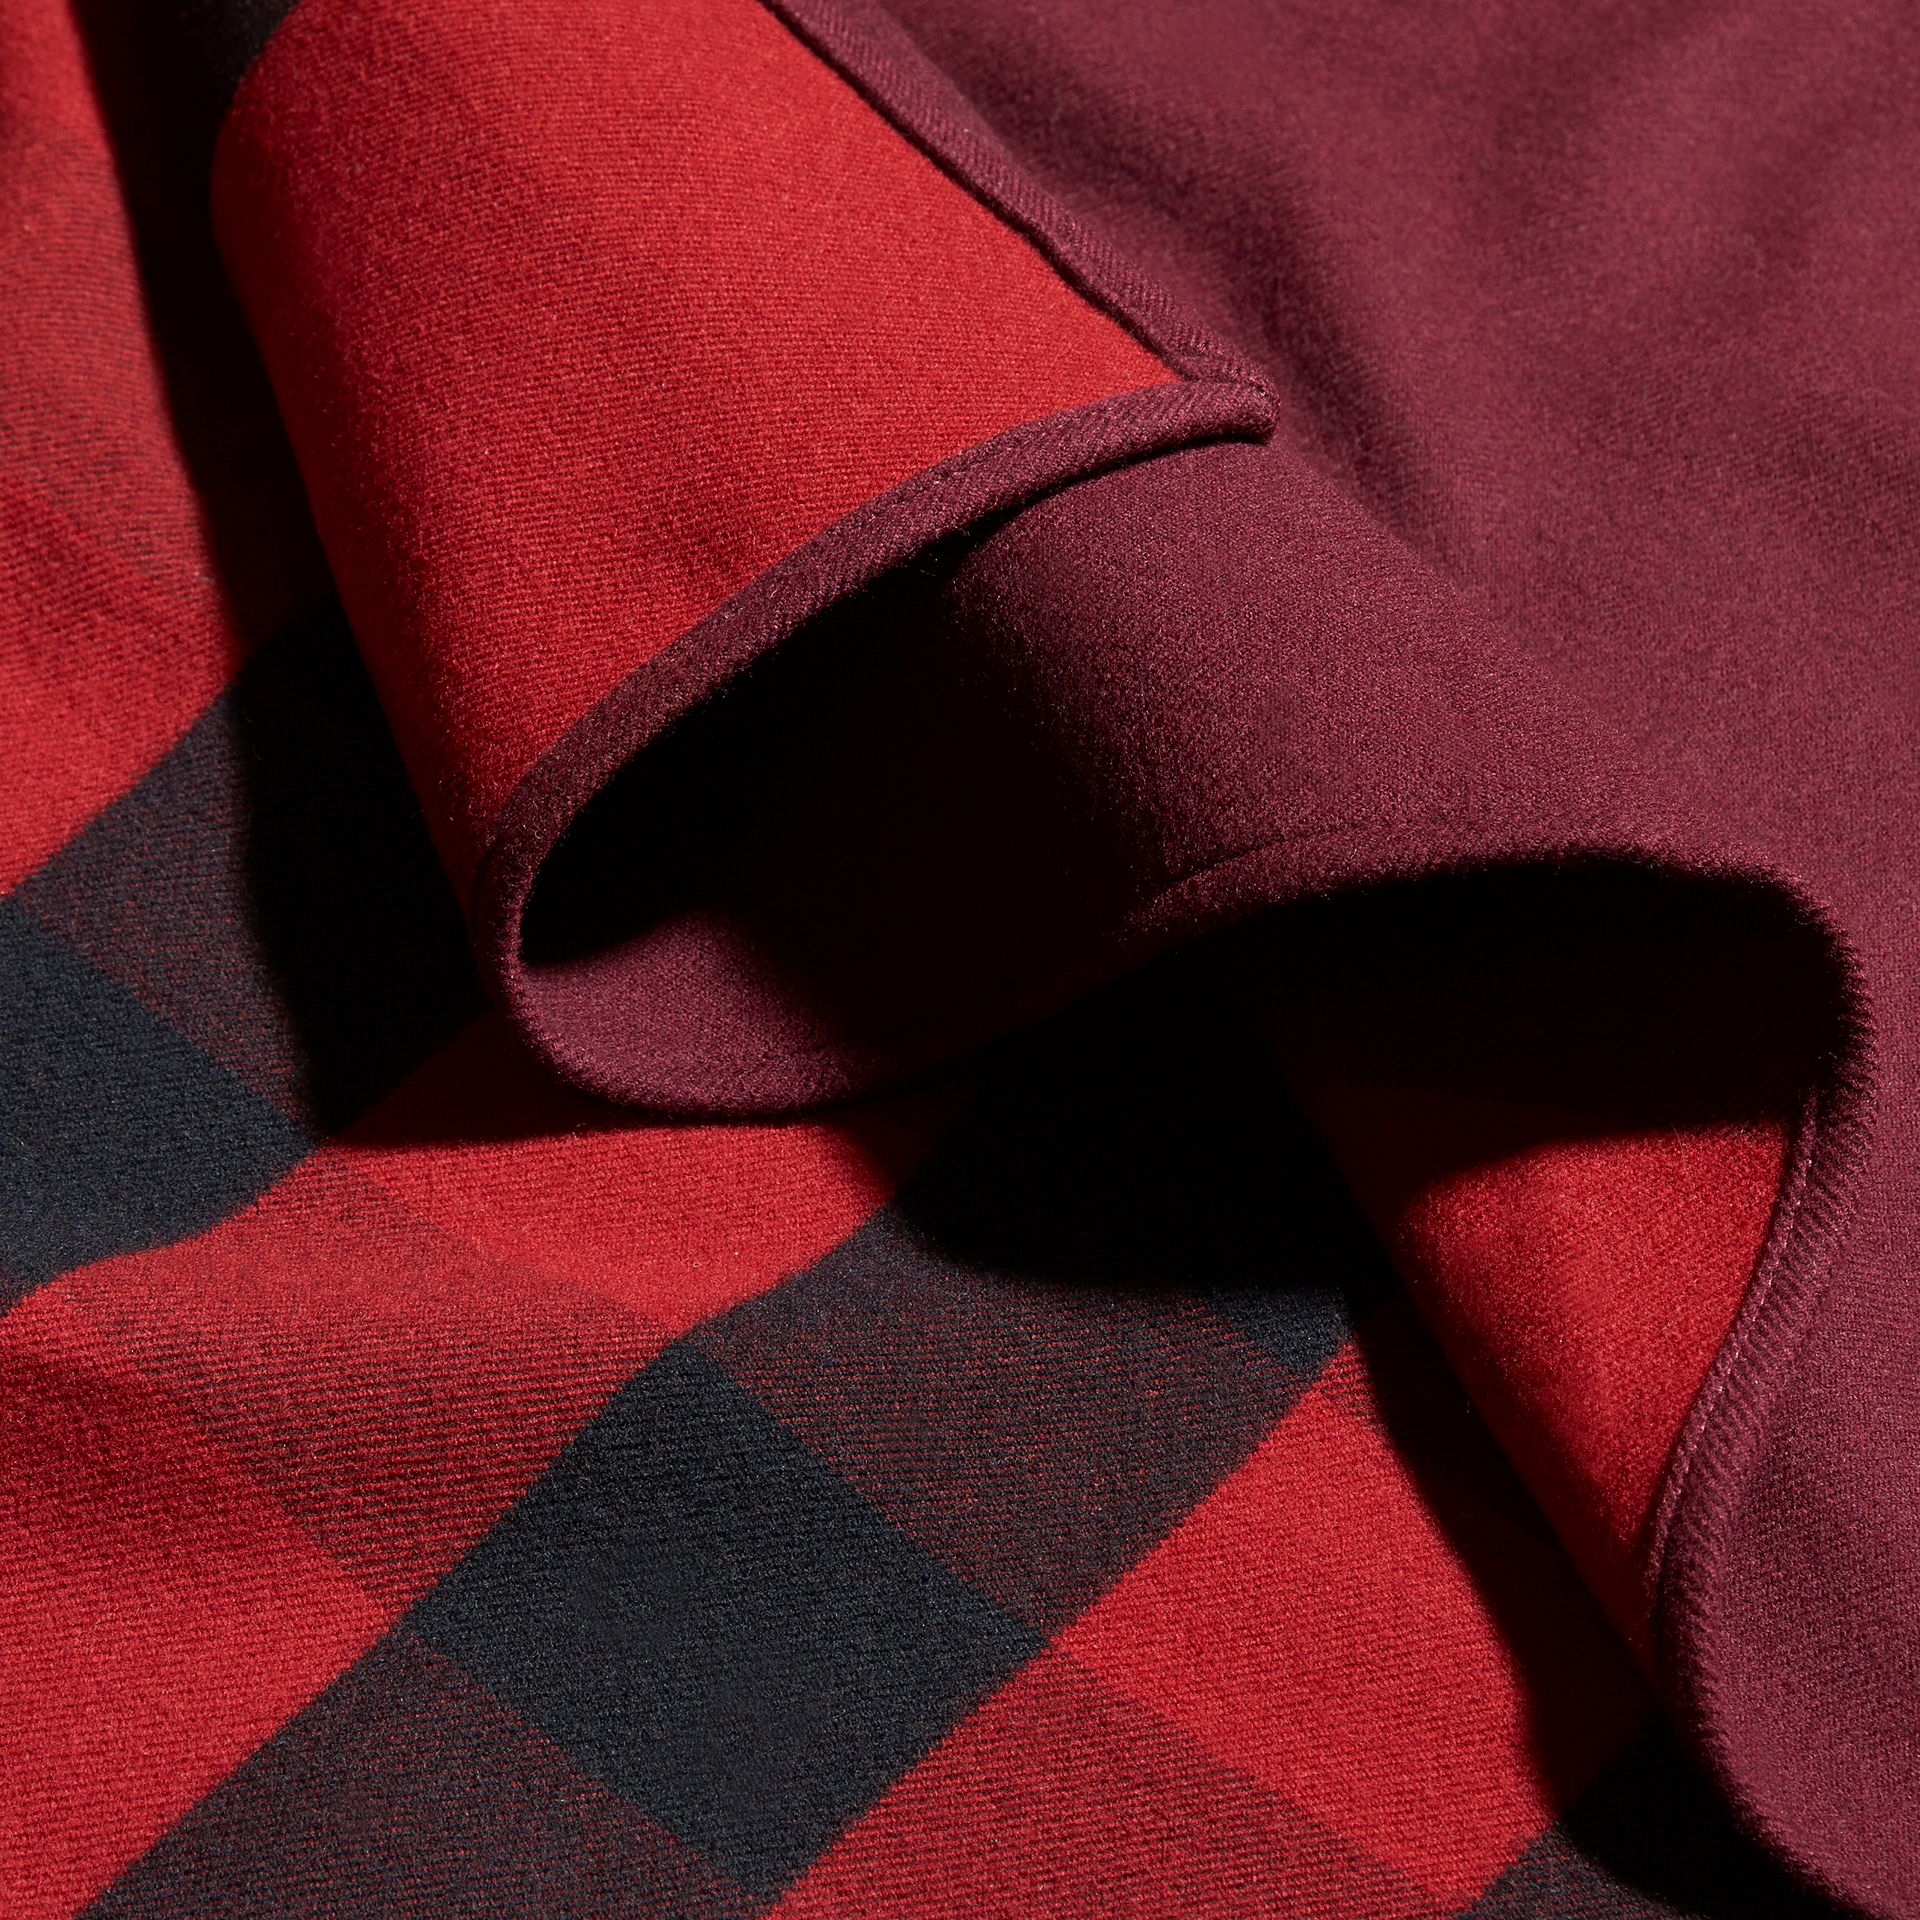 Reversible Check Merino Wool Poncho in Parade Red - Women | Burberry - gallery image 2